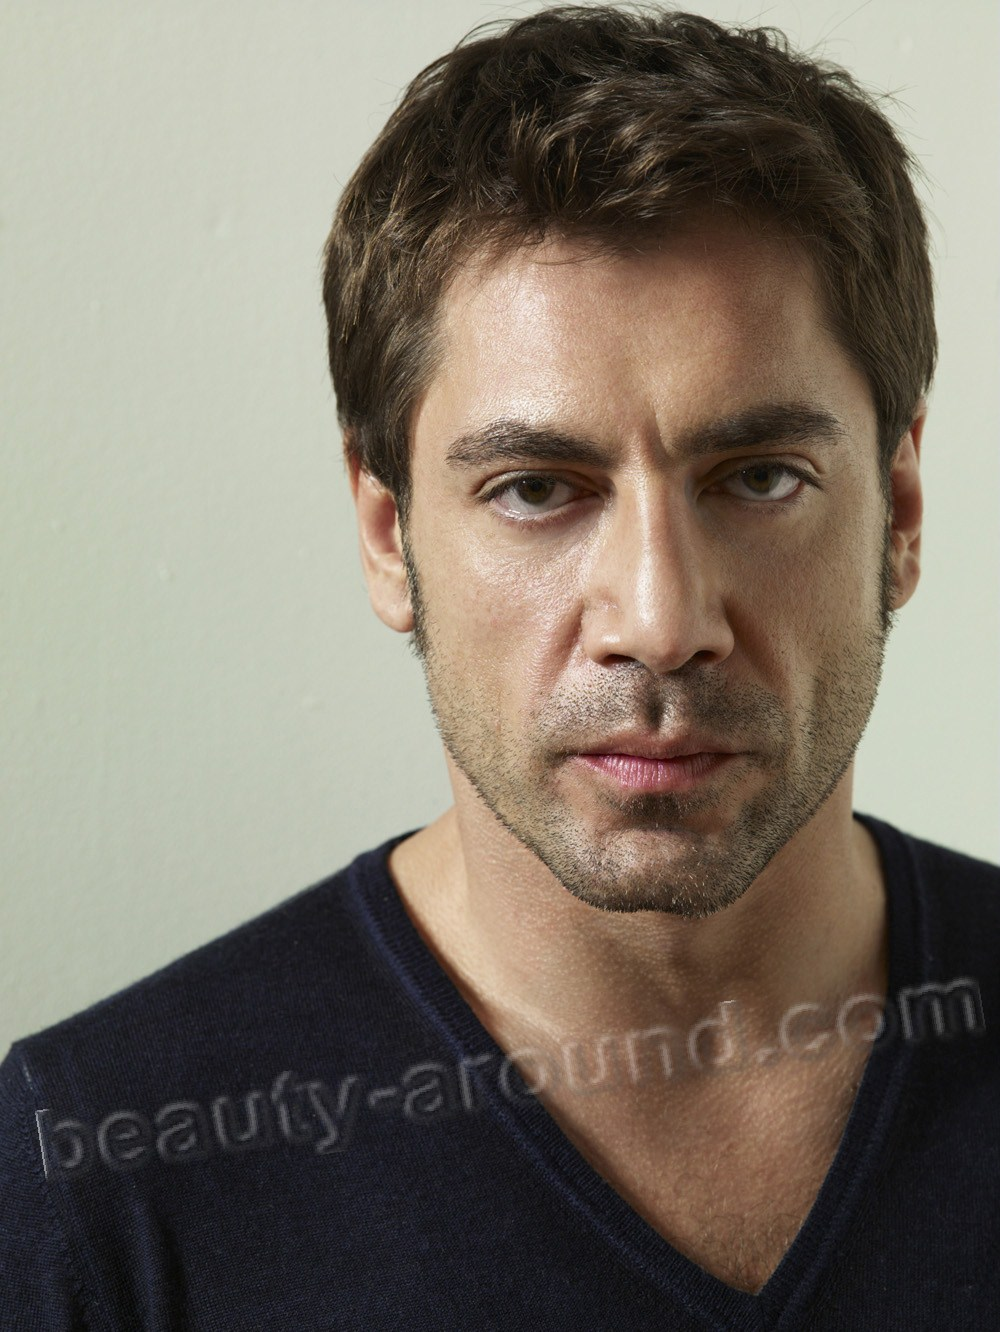 Javier Bardem famous spanish actor